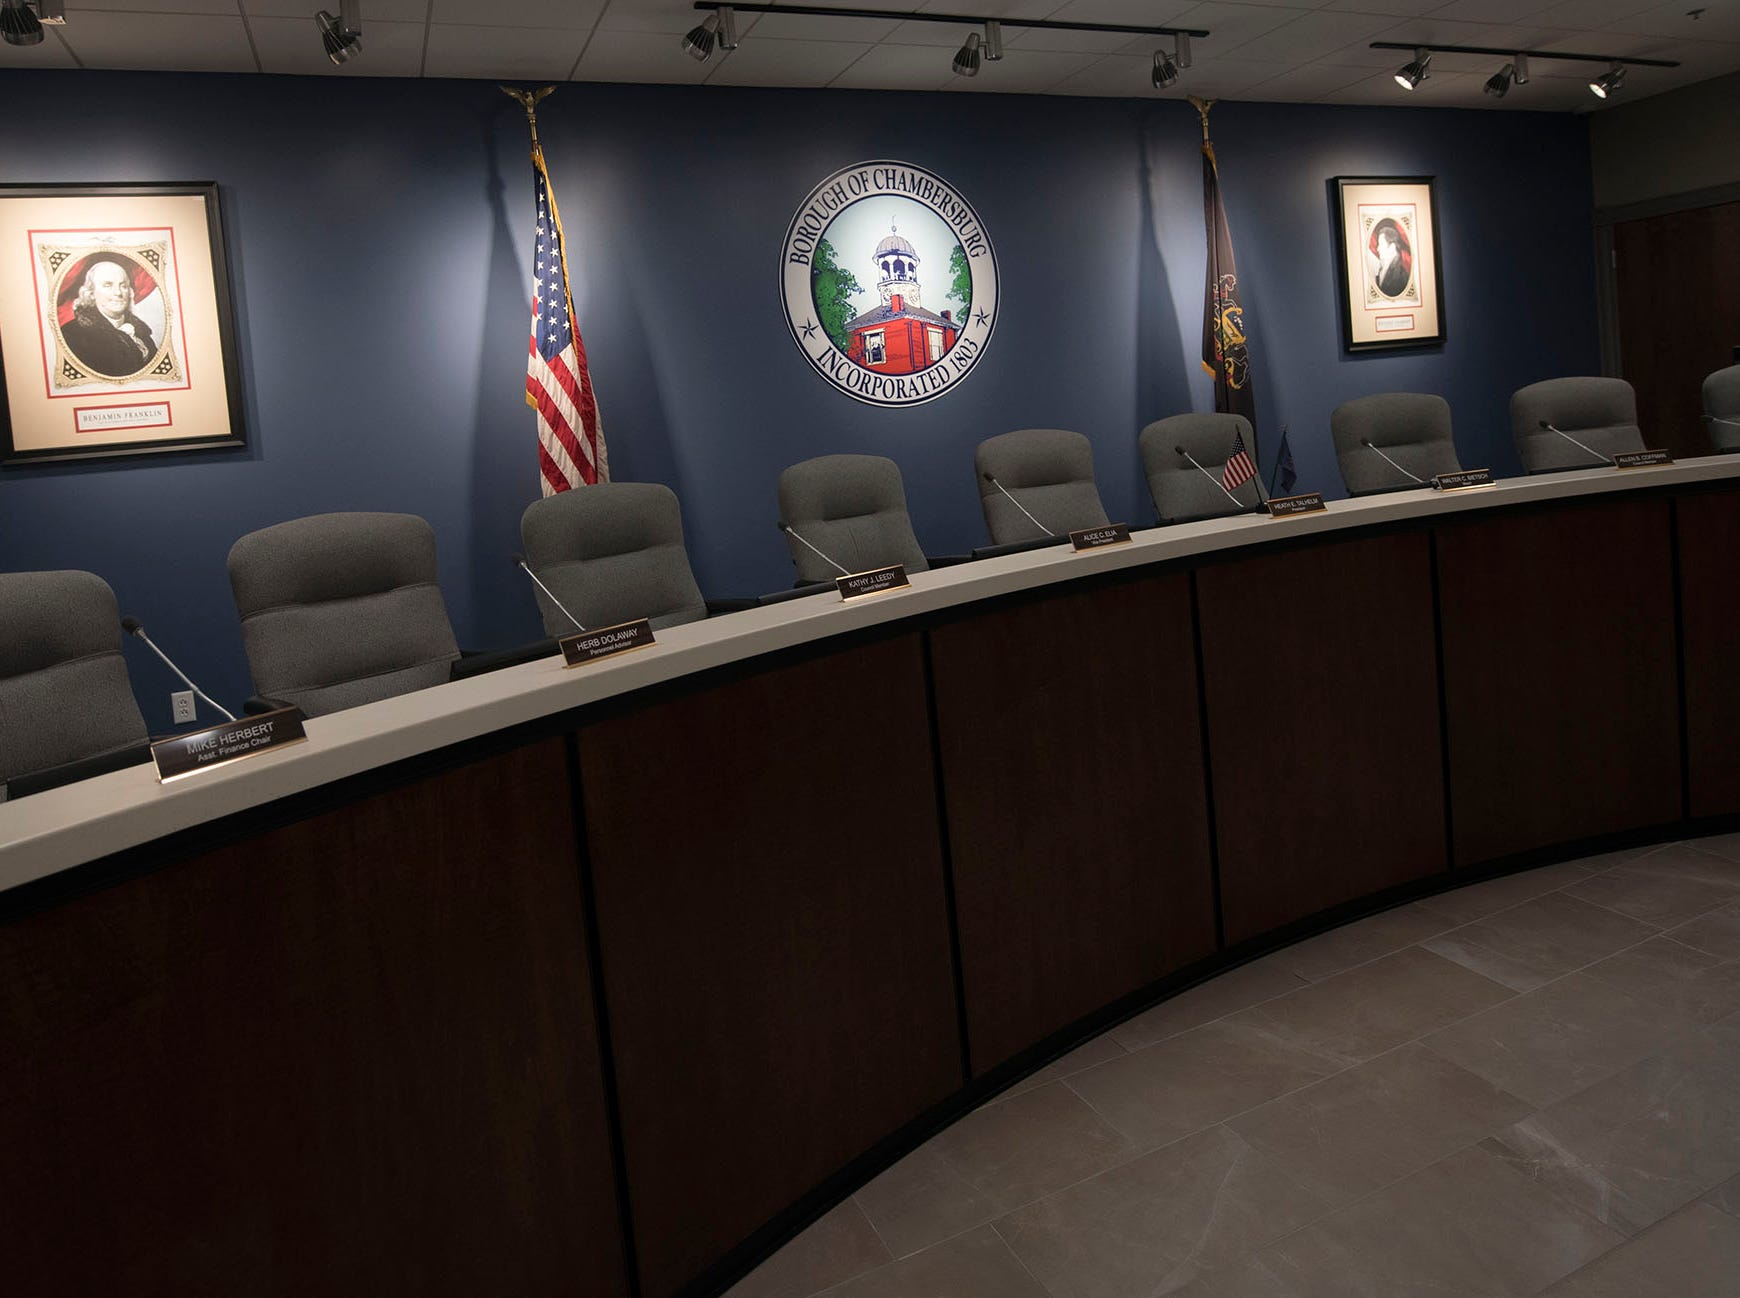 The new Chambersburg Borough Council Chambers is pictured  after a ribboncutting ceremony on Thursday, December 20, 2018.